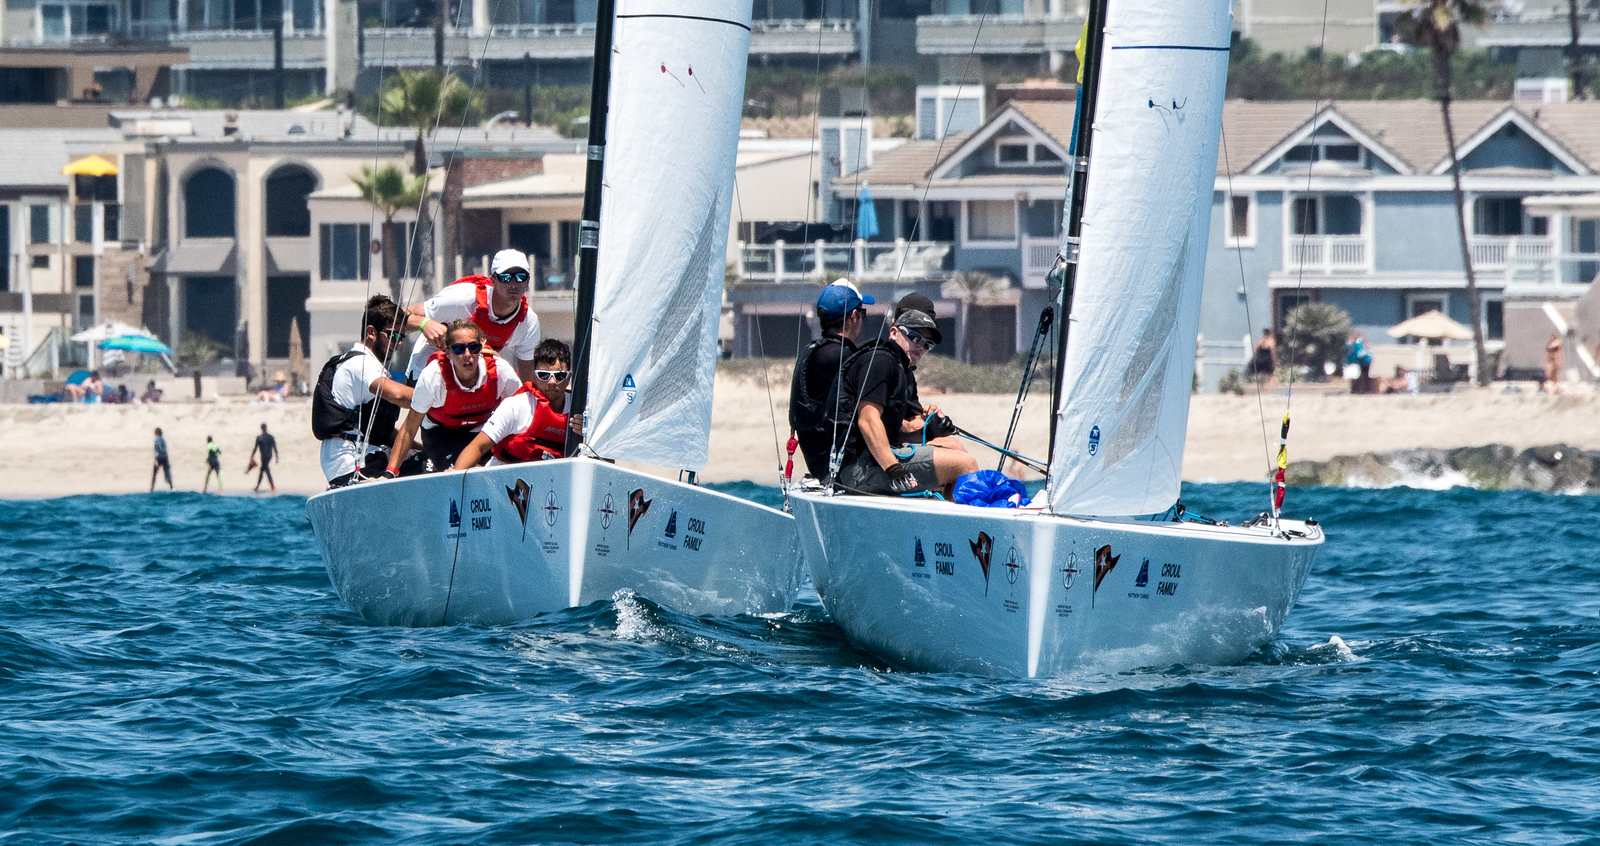 8/5/172:06:06 AM---On the water action photos of the World Sailing Youth Match Racing Championships  Match regatta hosted by Balboa Yacht Club | Photo Tom Walker